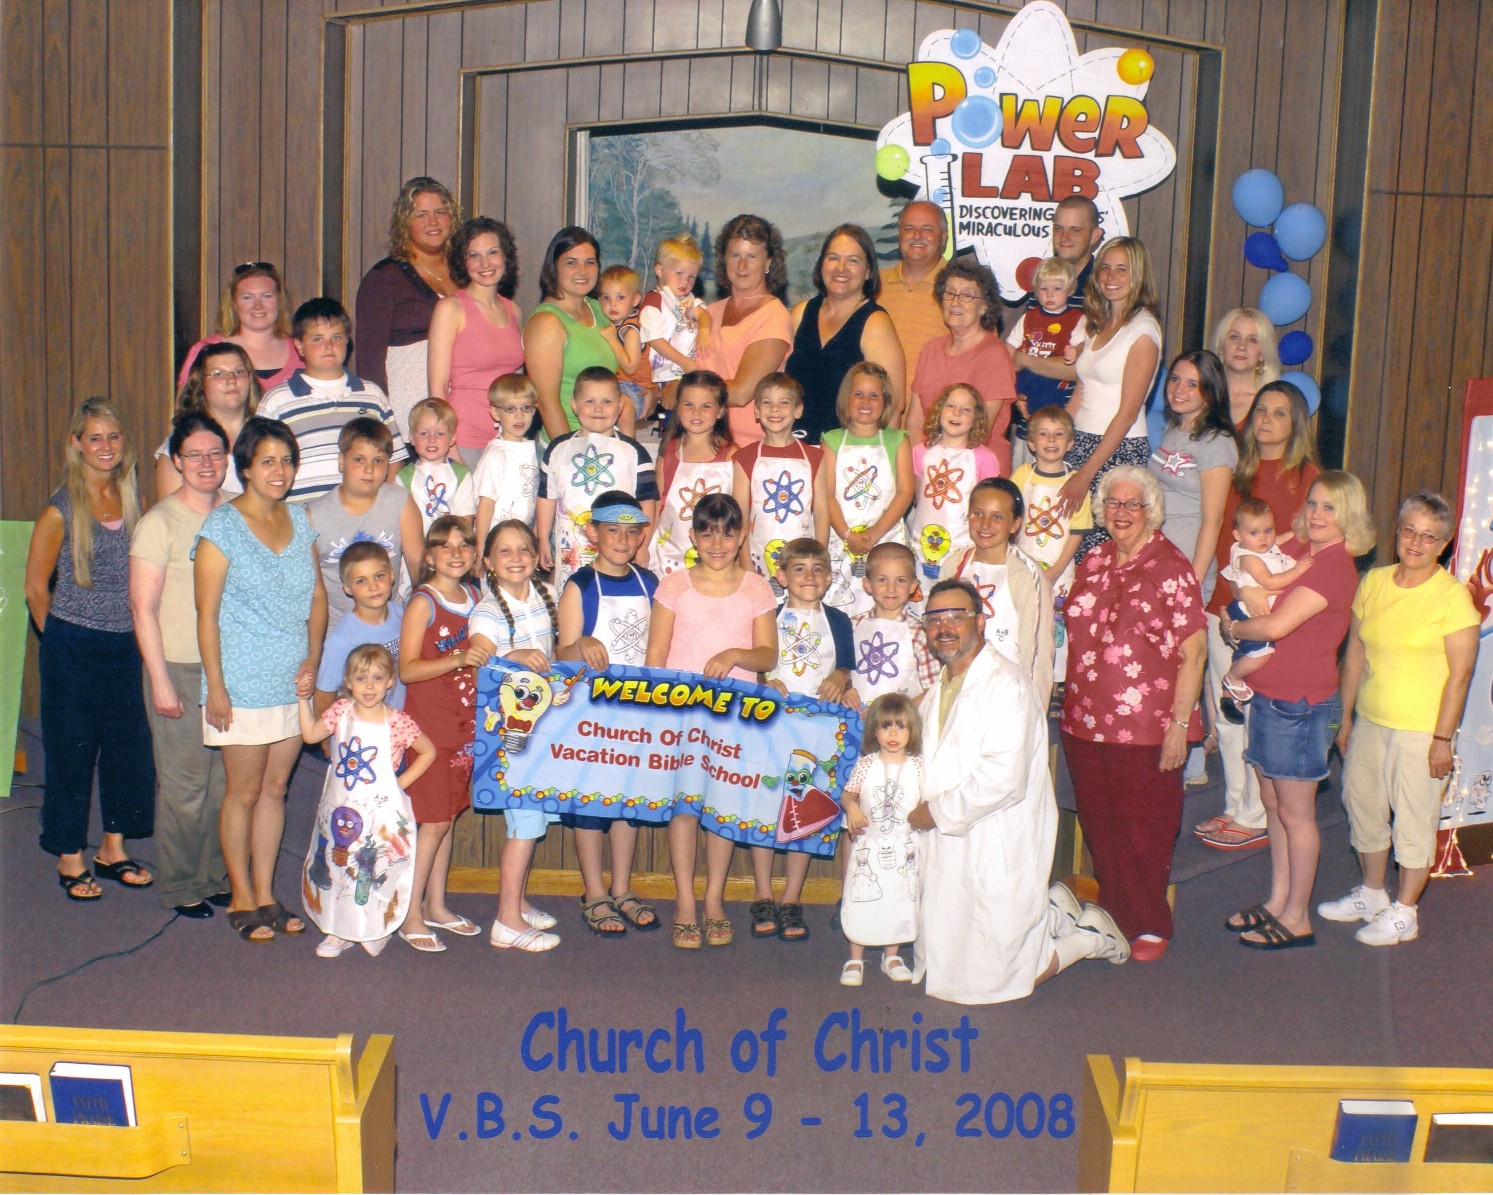 Connellsville church of christ vbs 2008 for Vacation bible school crafts for adults